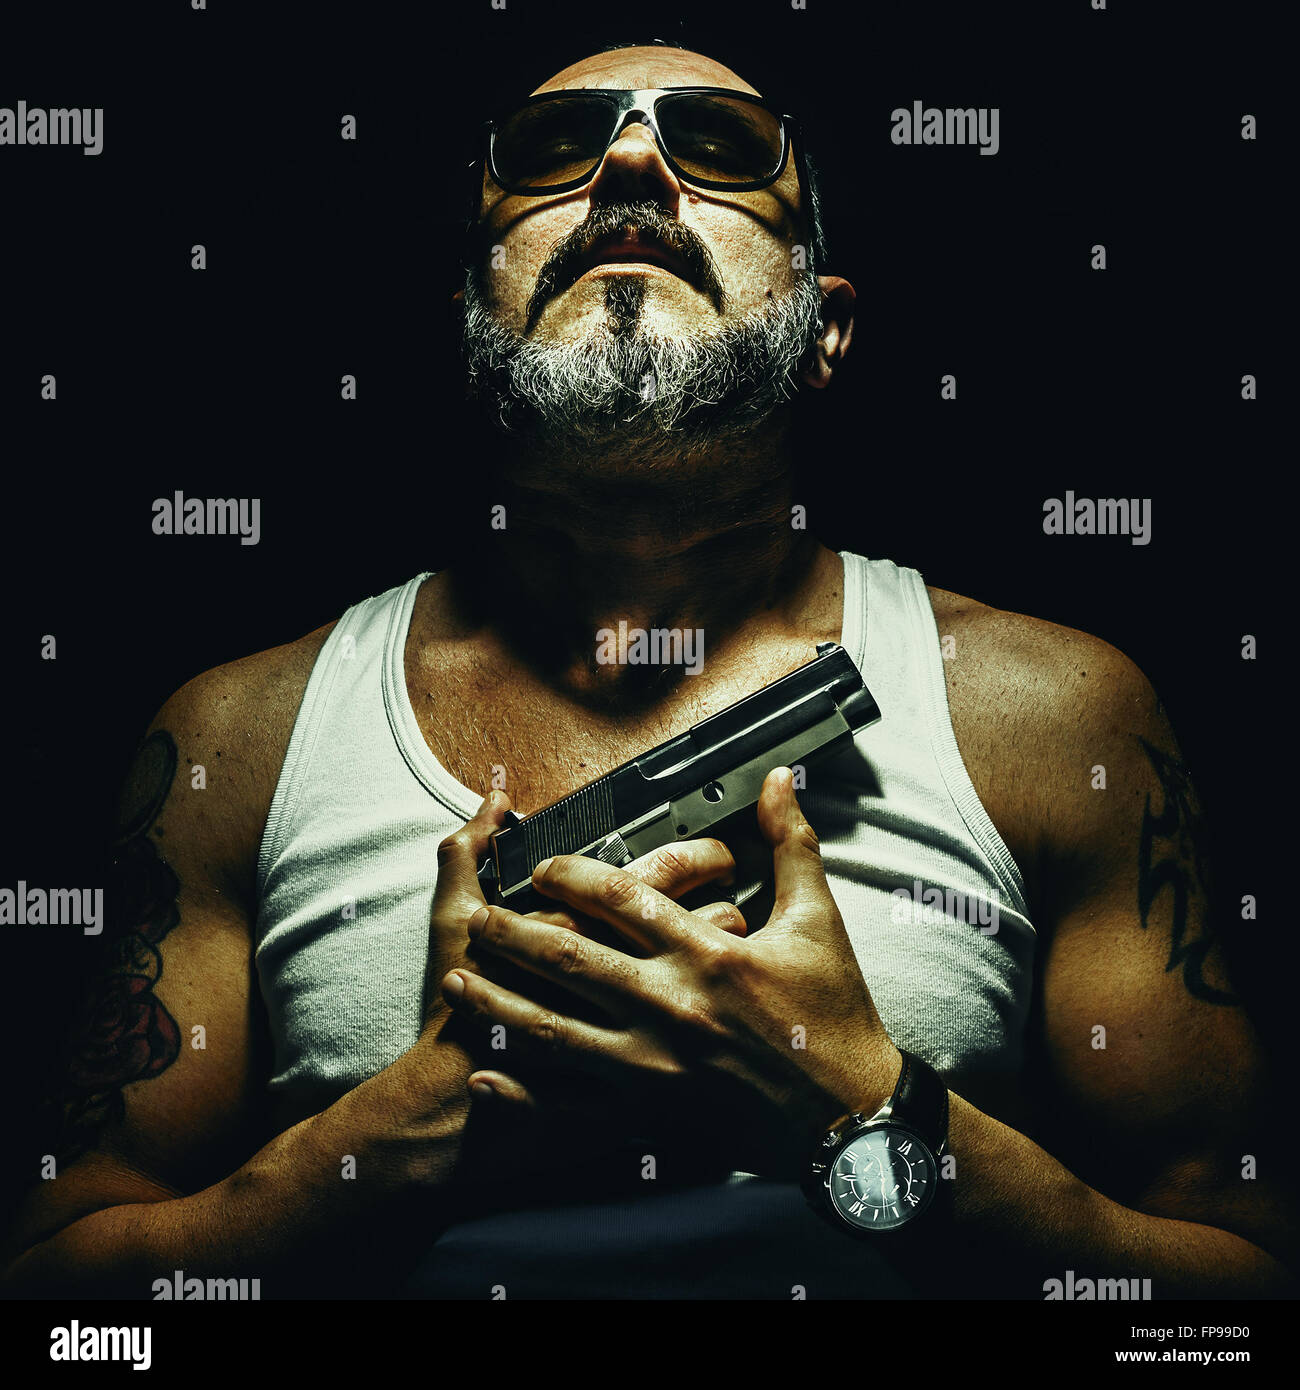 Relaxed and strong man holding a silver pistol on his chests. - Stock Image